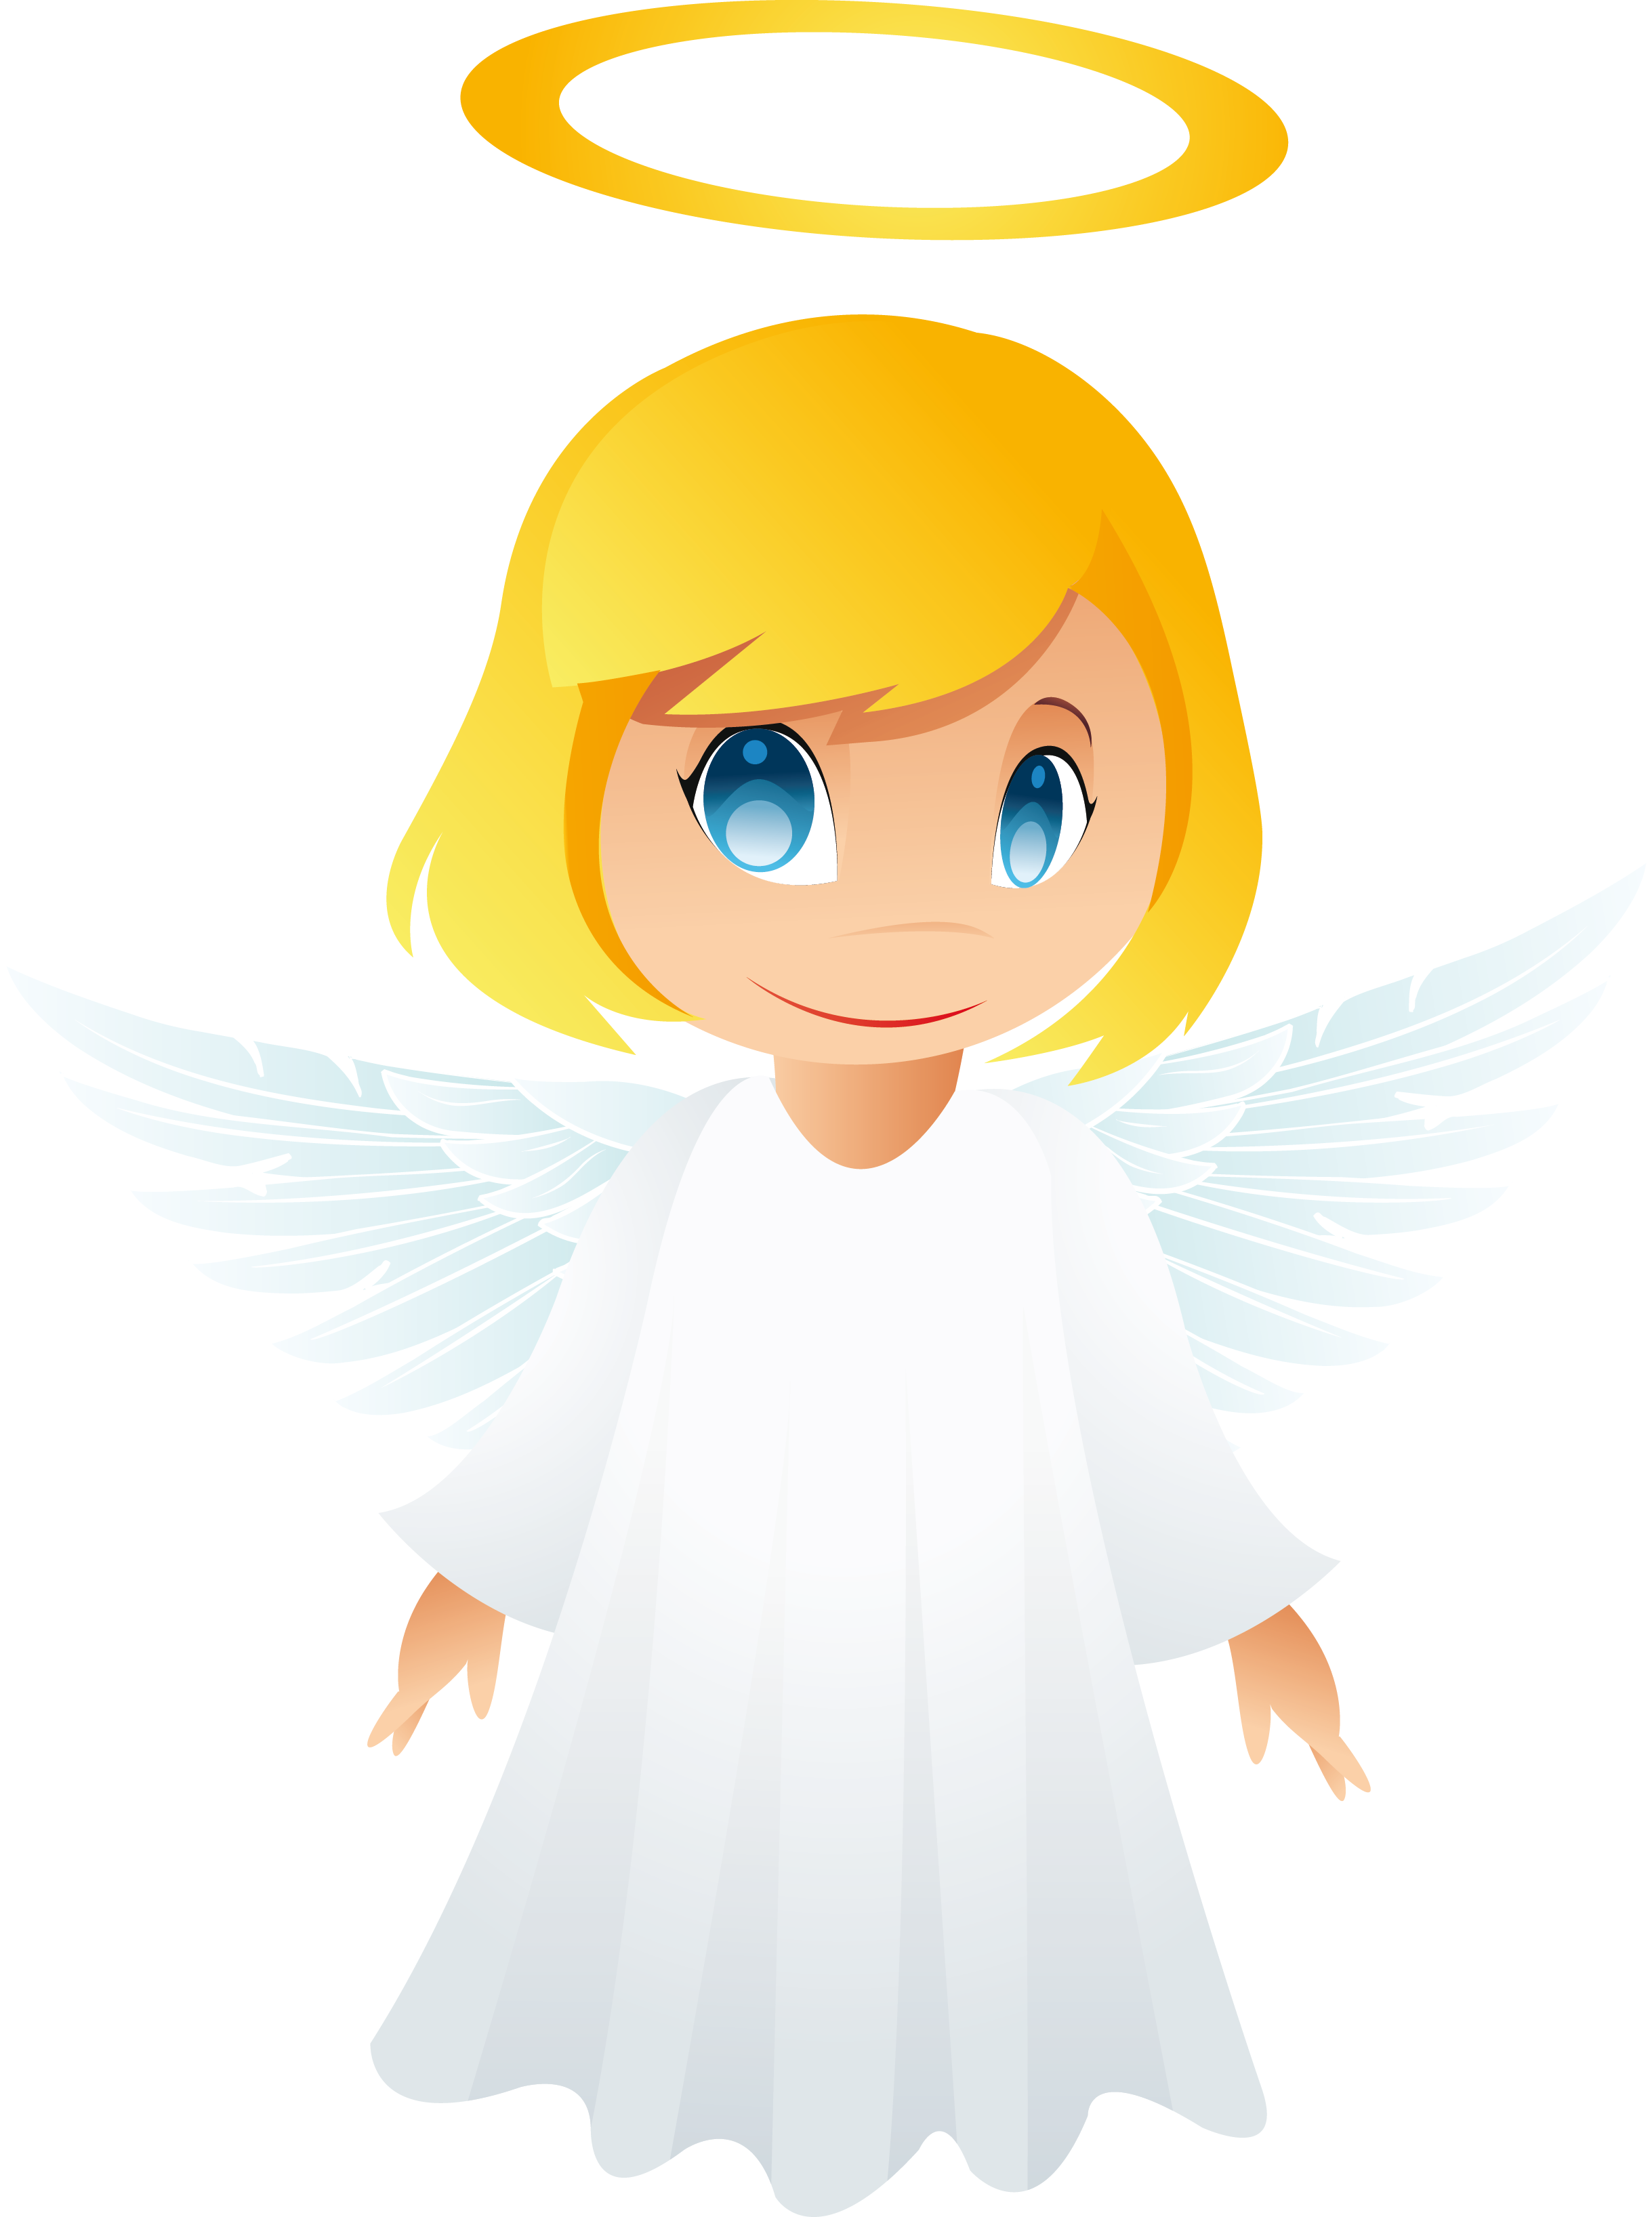 angel clipart free graphics of cherubs and angels the cliparts [ 2438 x 3272 Pixel ]